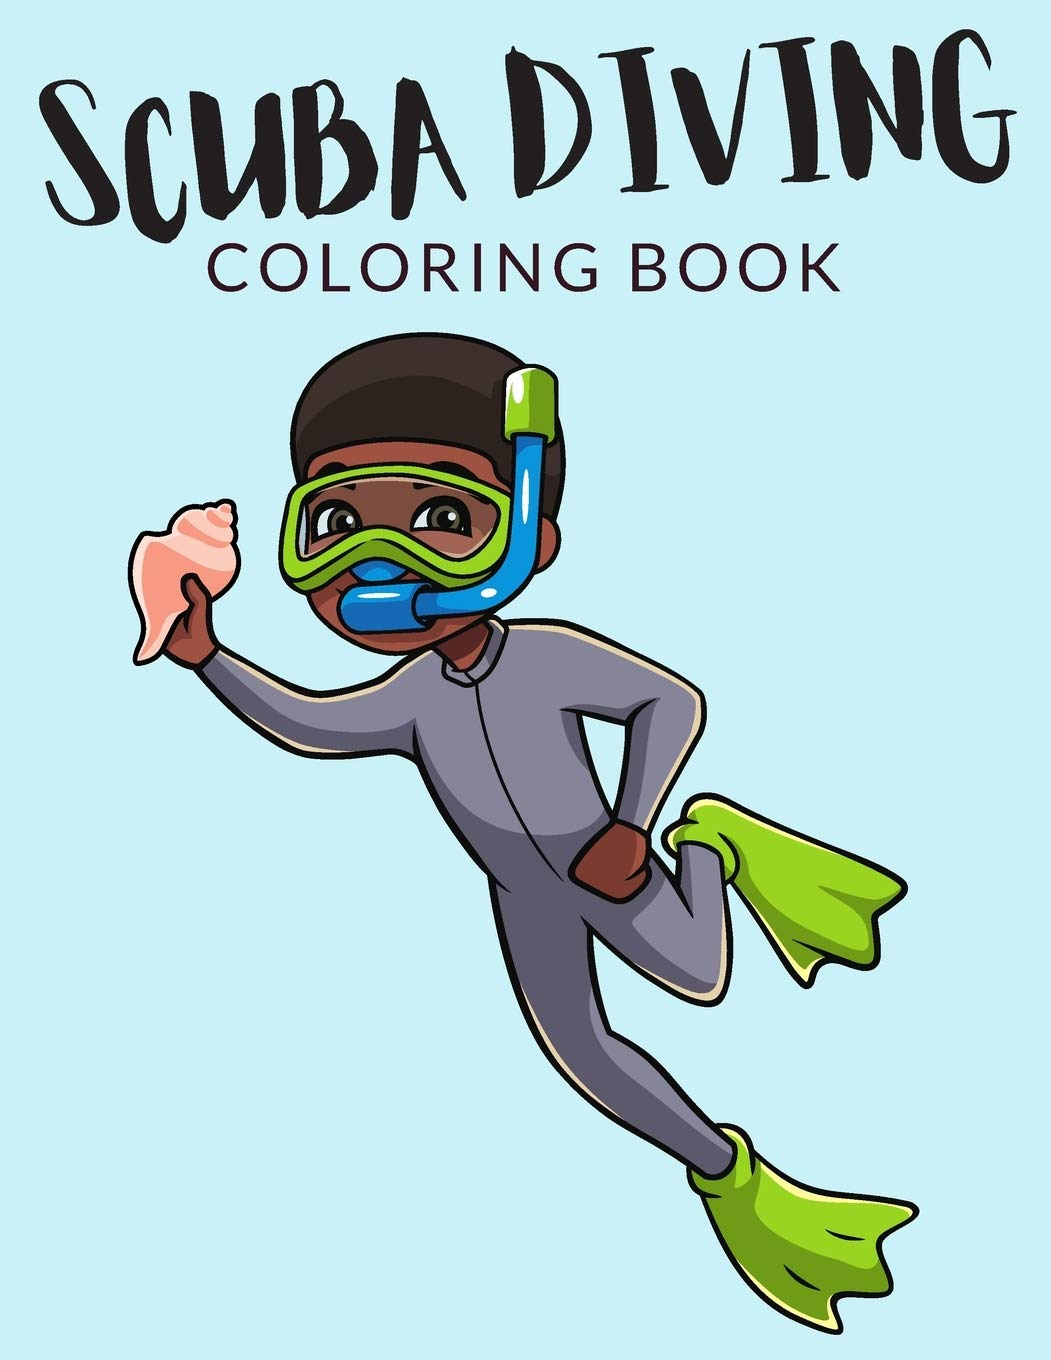 scuba diving coloring book for preschoolers over to color perfect underwater books of coloring pages Scuba Diver Coloring Page